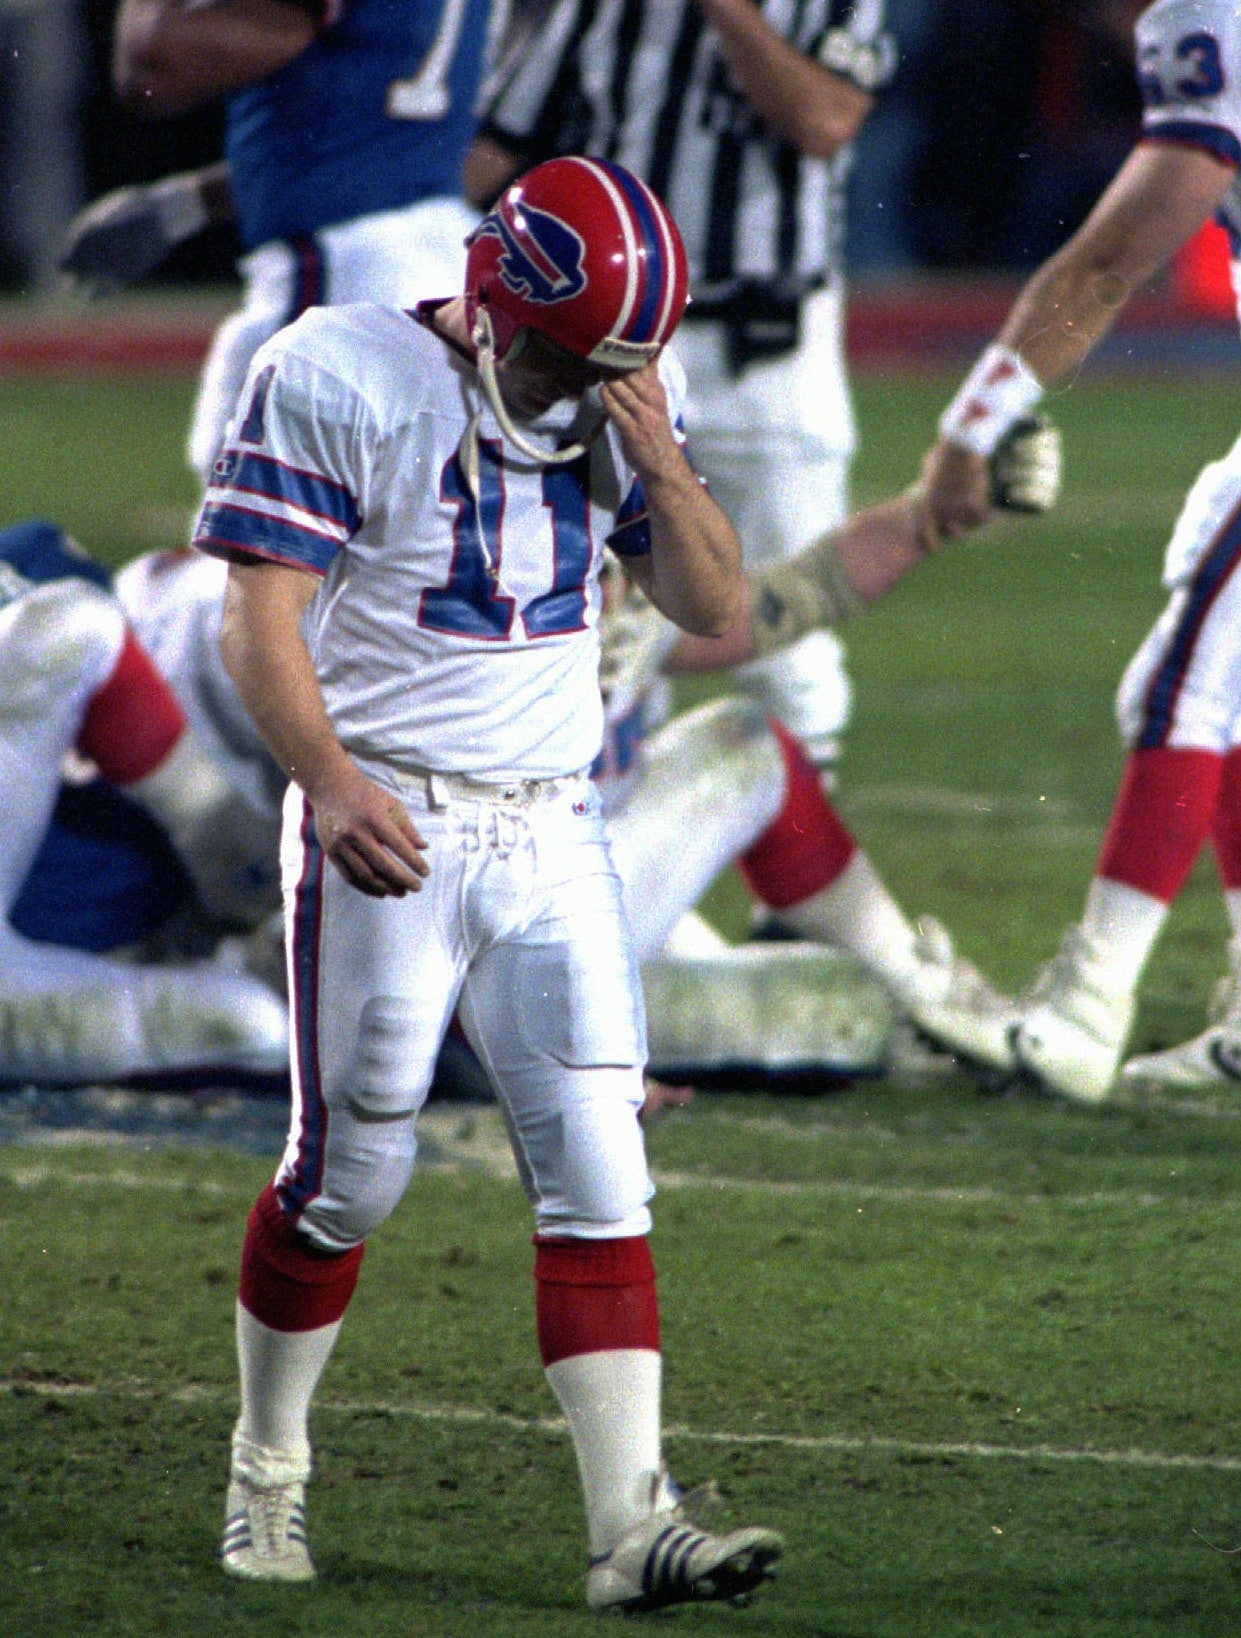 Buffalo Bills kicker Scott Norwood walks off the field after missing what would have been the game-winning field goal against the New York Giants in Super Bowl XXV. Chris O'Meara/AP Photo